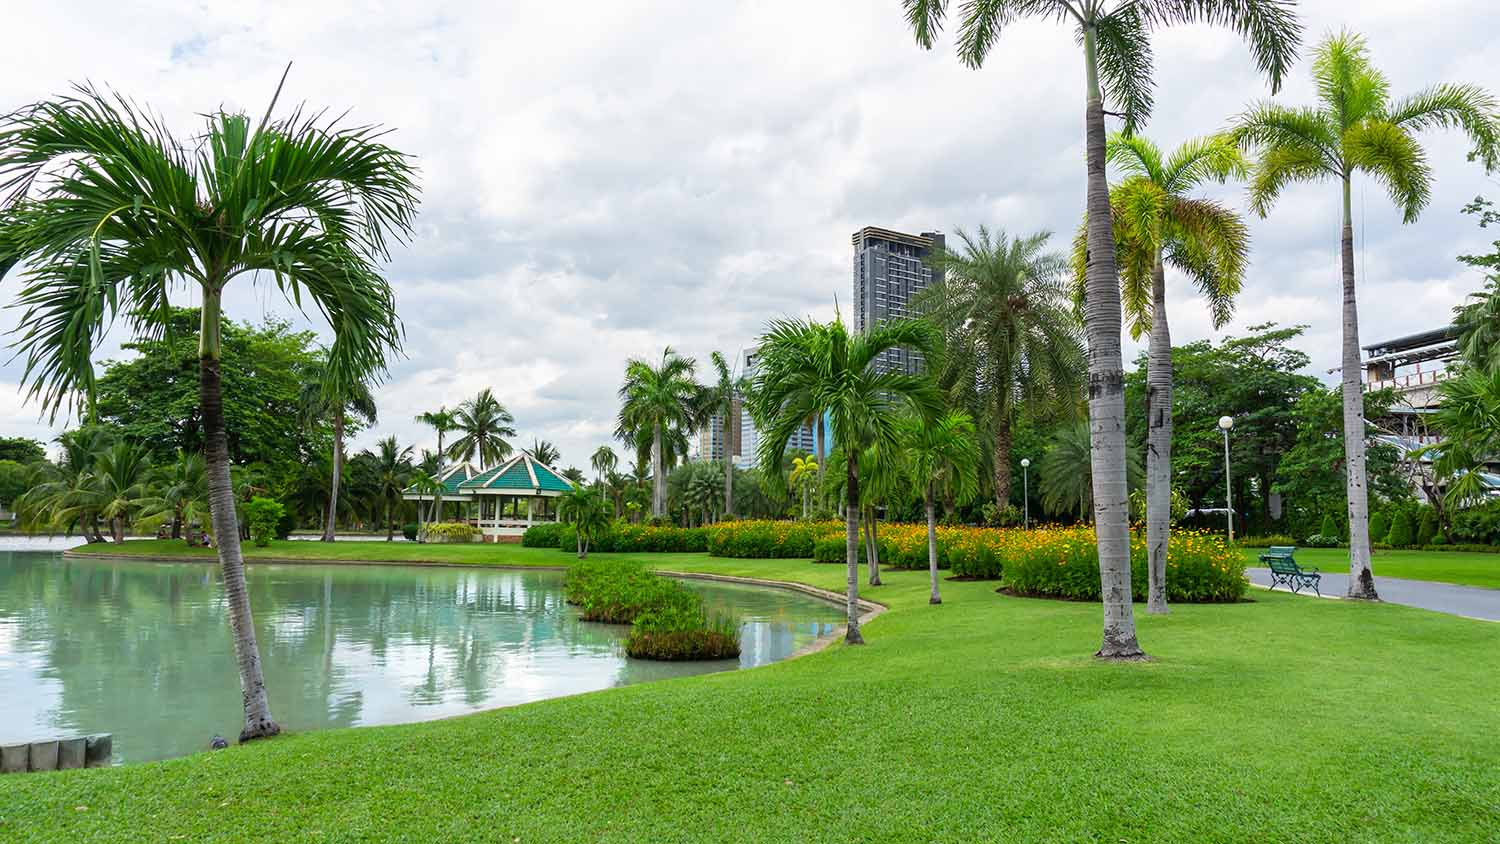 Green grass lawn beside a lake, palm and greenery trees on background under cloudy sky in garden of public park